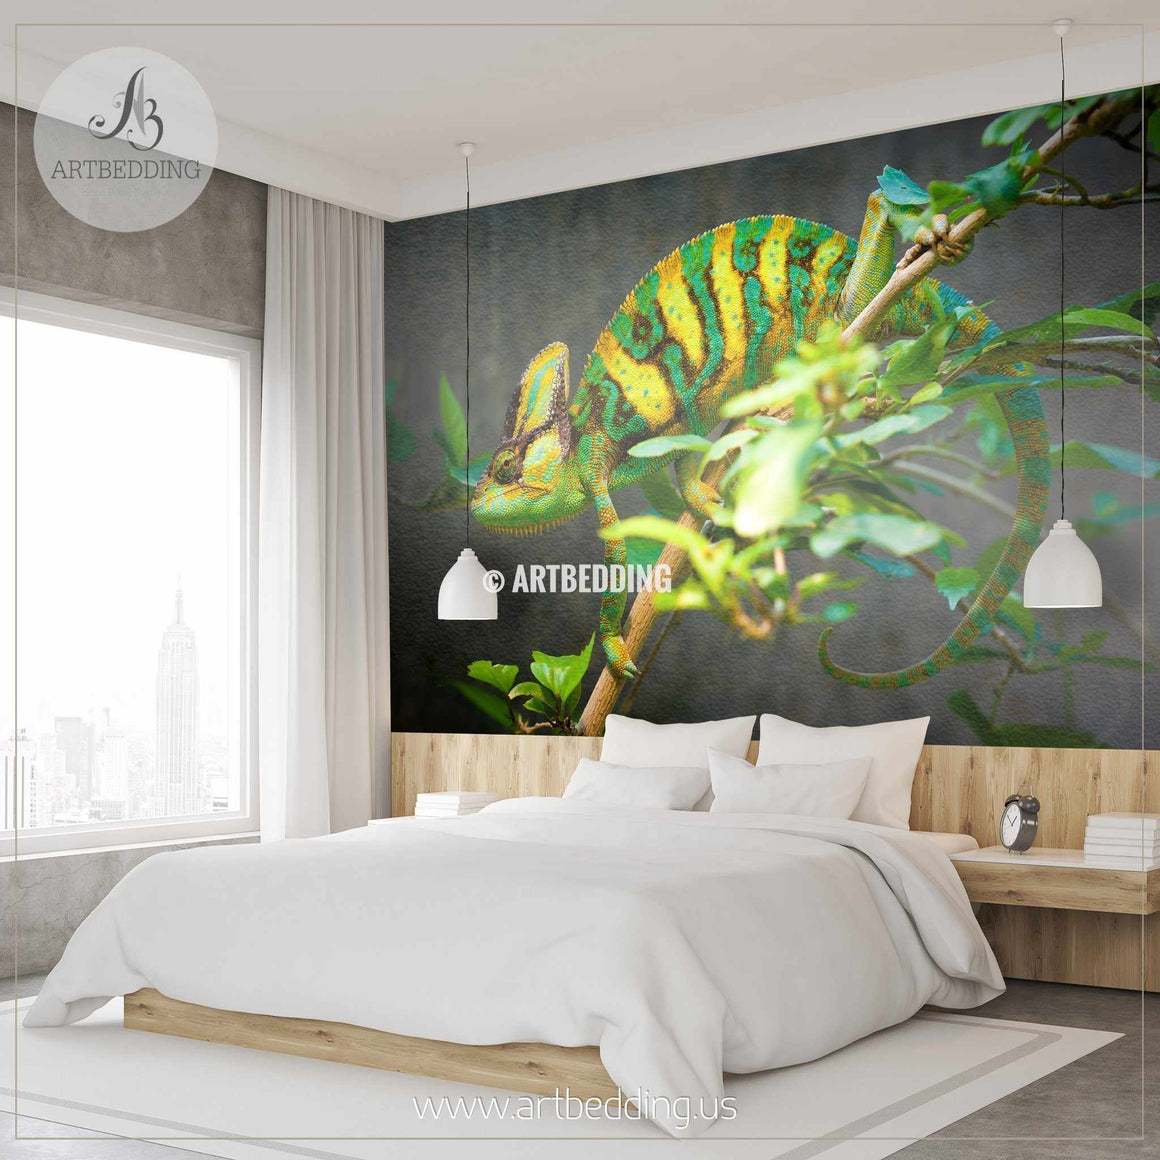 Chameleon Wall Mural, Chameleon Self Adhesive Peel & Stick Photo Mural, Beautiful Chameleon wallpaper wall mural